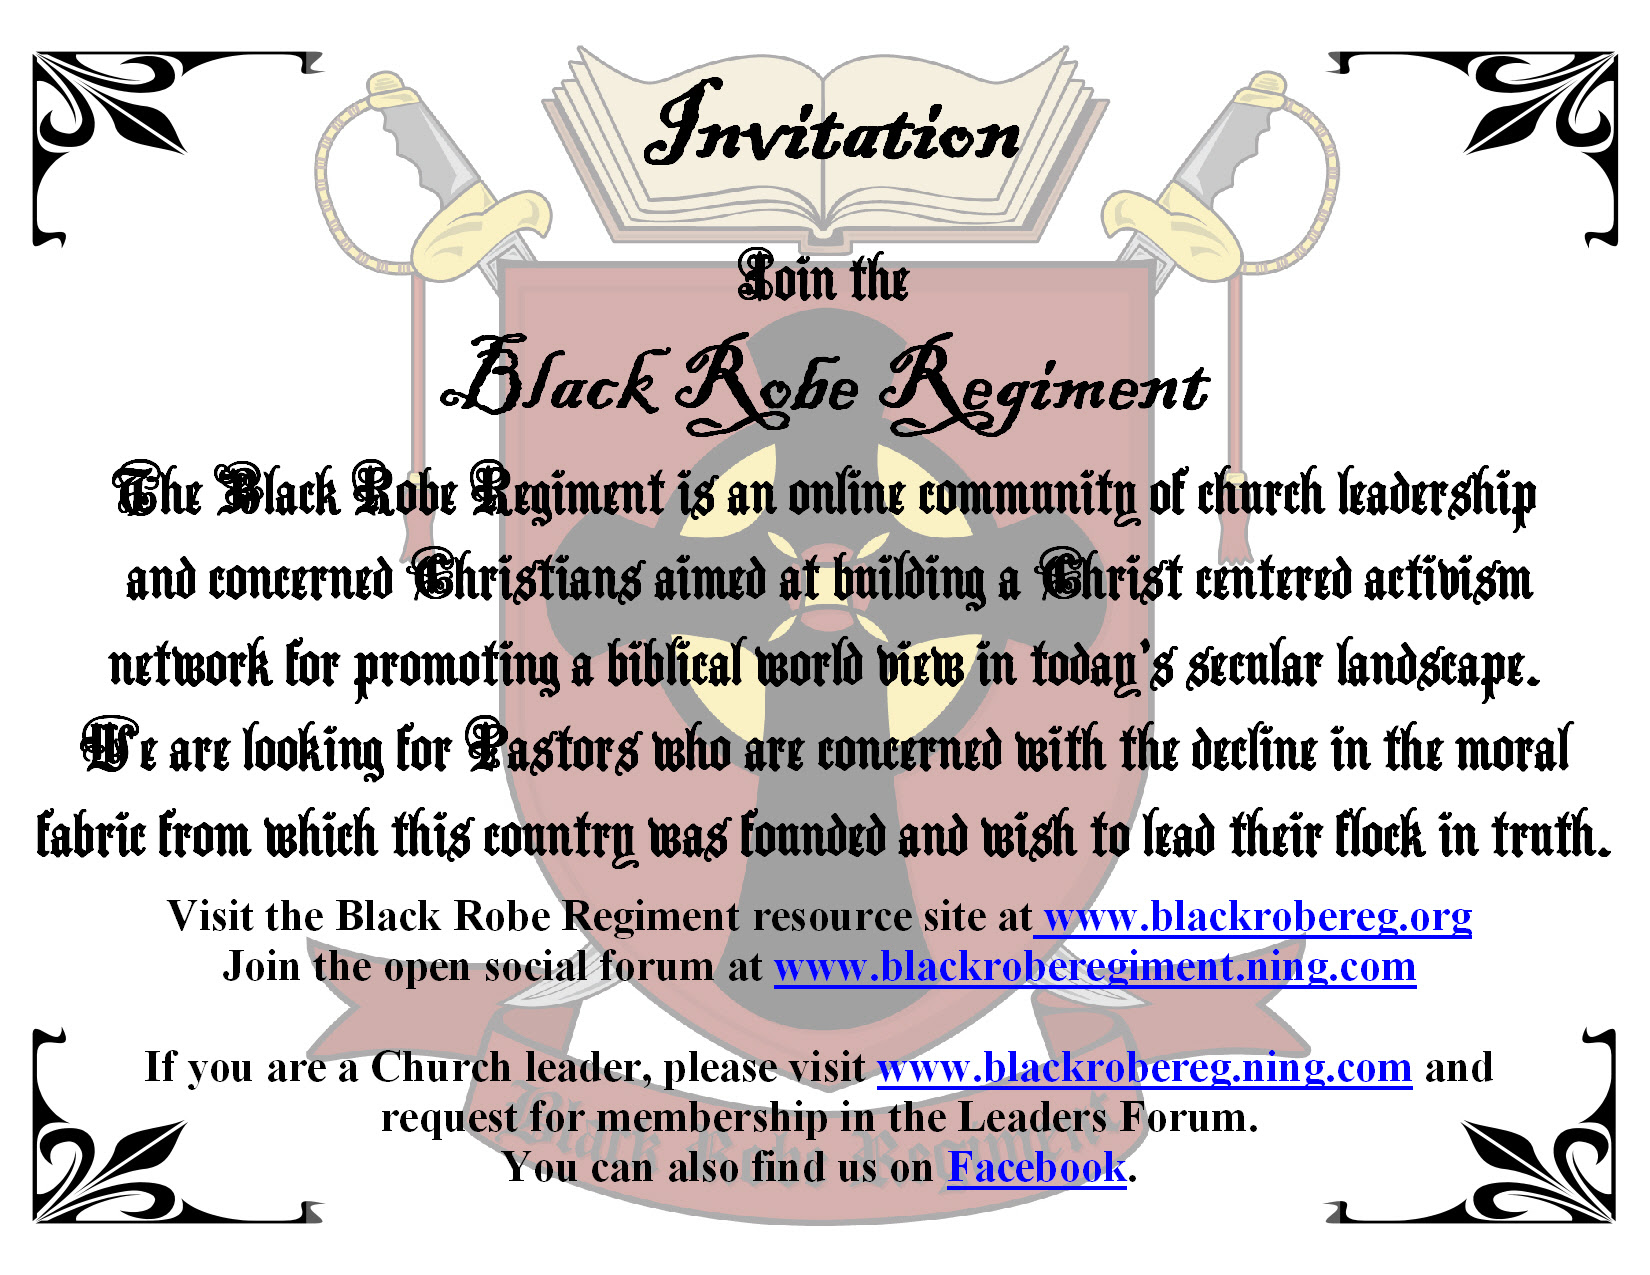 http://www.blackrobereg.org/uploads/2/8/9/8/2898266/brr_invitation.jpg